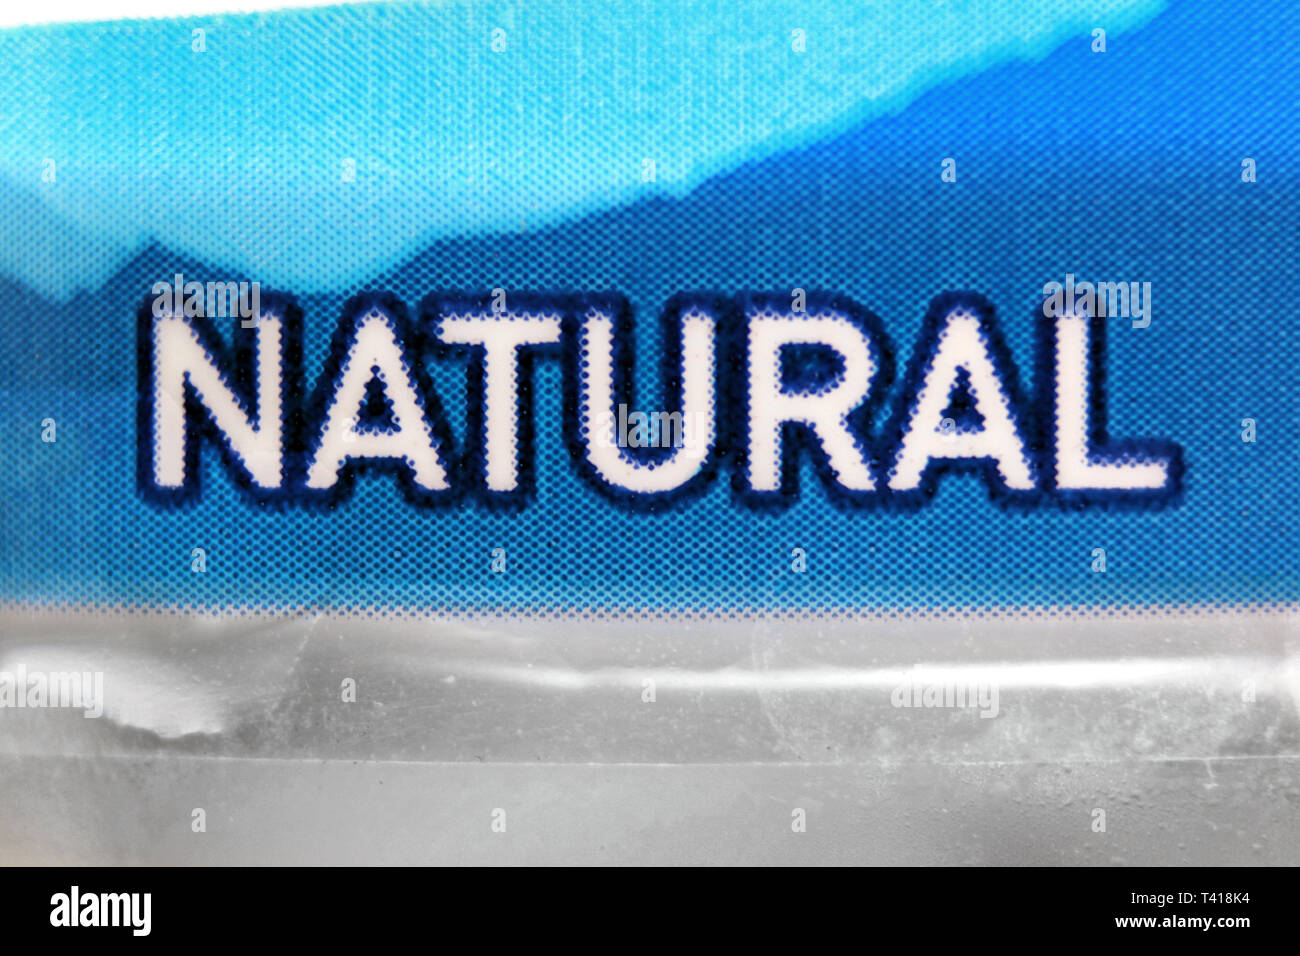 Natural printed on label in plastic disposable water bottle, close-up - Stock Image